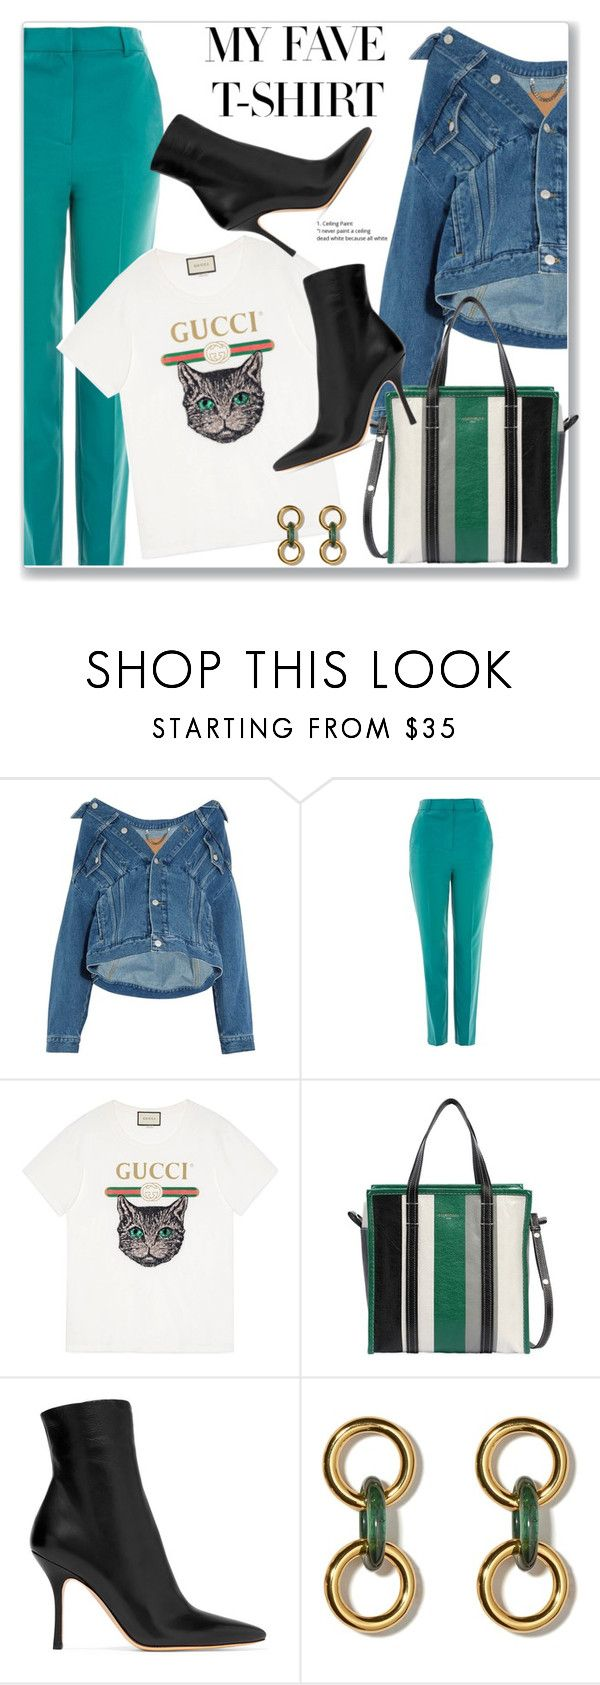 """""""Dress Up a T-Shirt"""" by lula-l ❤ liked on Polyvore featuring Balenciaga, Topshop, Gucci, The Row and MyFaveTshirt"""